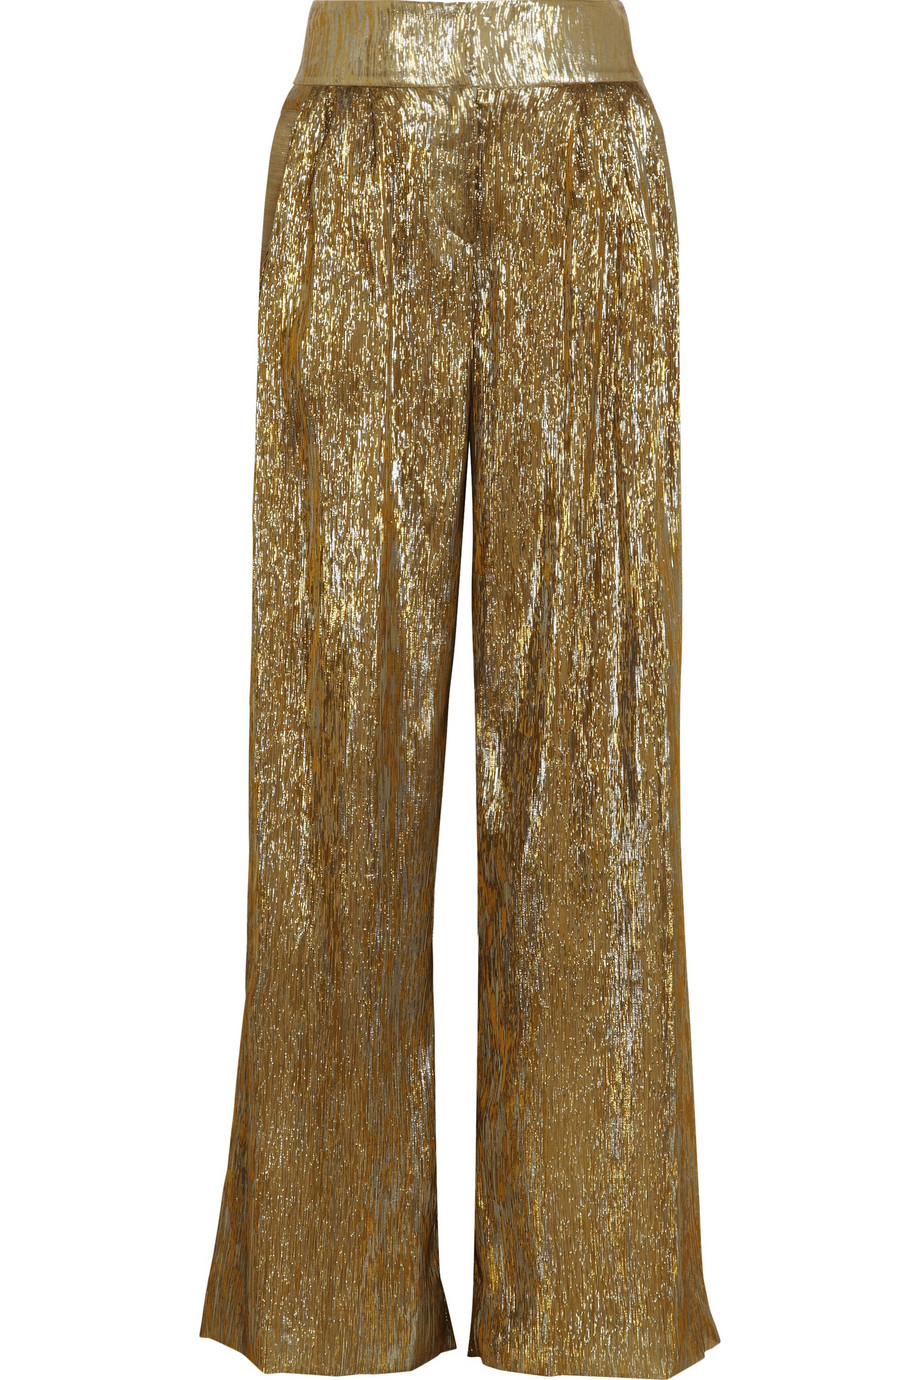 Gold Wide Leg Pants Gold Sequin Wide Leg Pants Cotton Wide Leg Pants Dressy Wide Leg Pants Linen Wide Leg Pants Printed Wide Leg Pants Silk Wide Leg Pants Wide Leg Cropped Pants Wide Leg Linen Pants. Stay in the Know! Be the first to know about new arrivals, look books, sales & promos! Company. About Us.